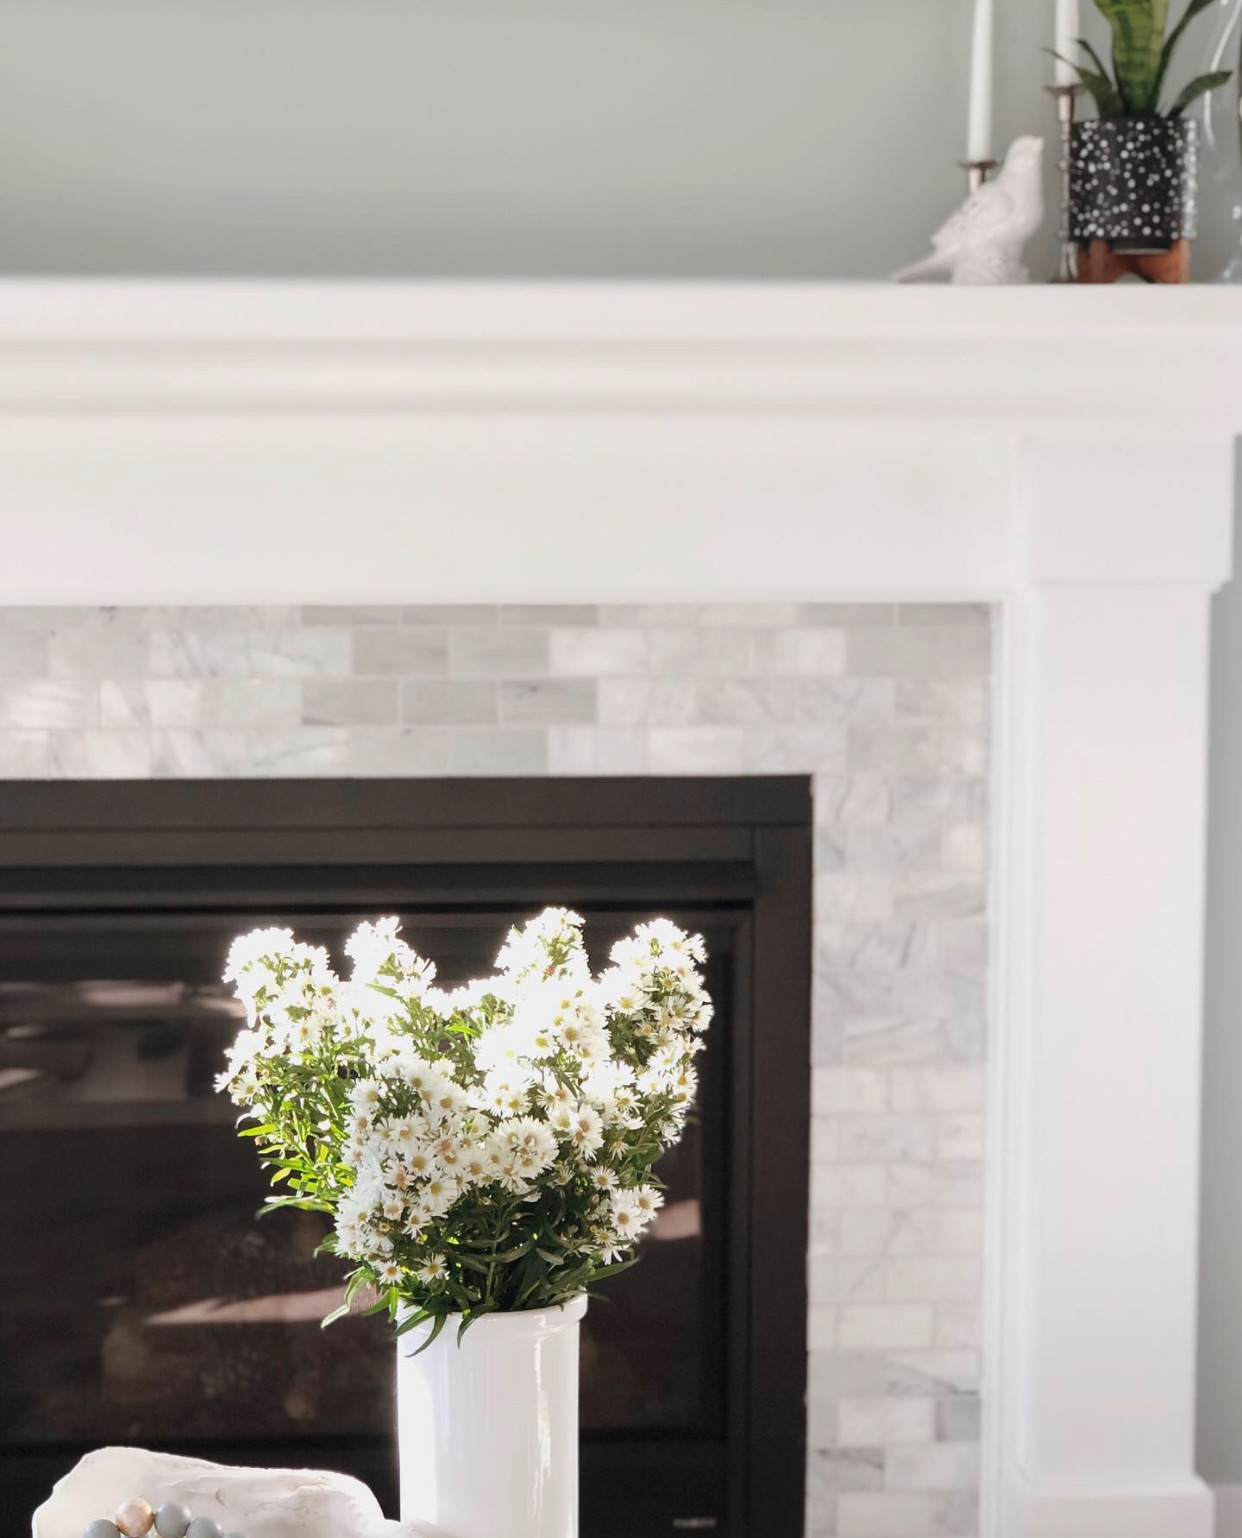 A little plant on the mantle adds a homey feel to the design.